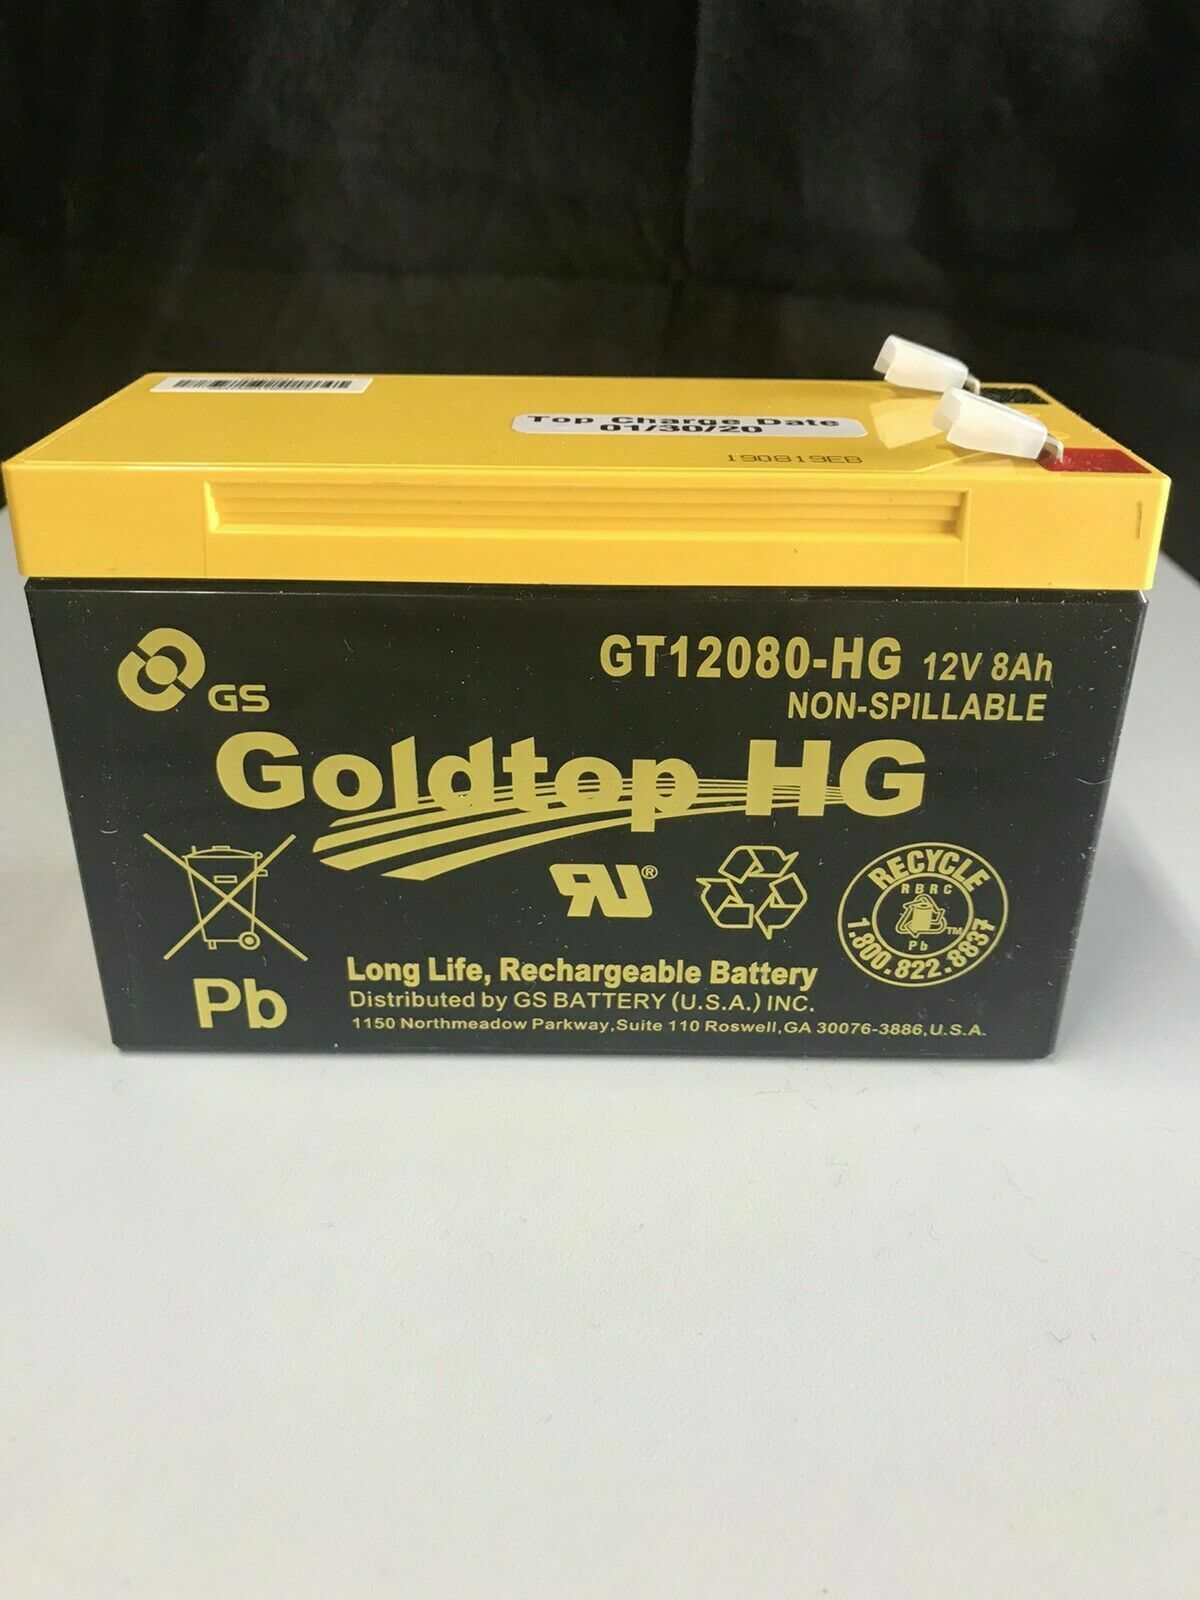 3 Year Warranty Premium Replacement for PX12072-HG GT12080-HG by GS Battery Genuine FiOS OEM Approved Replacement Battery